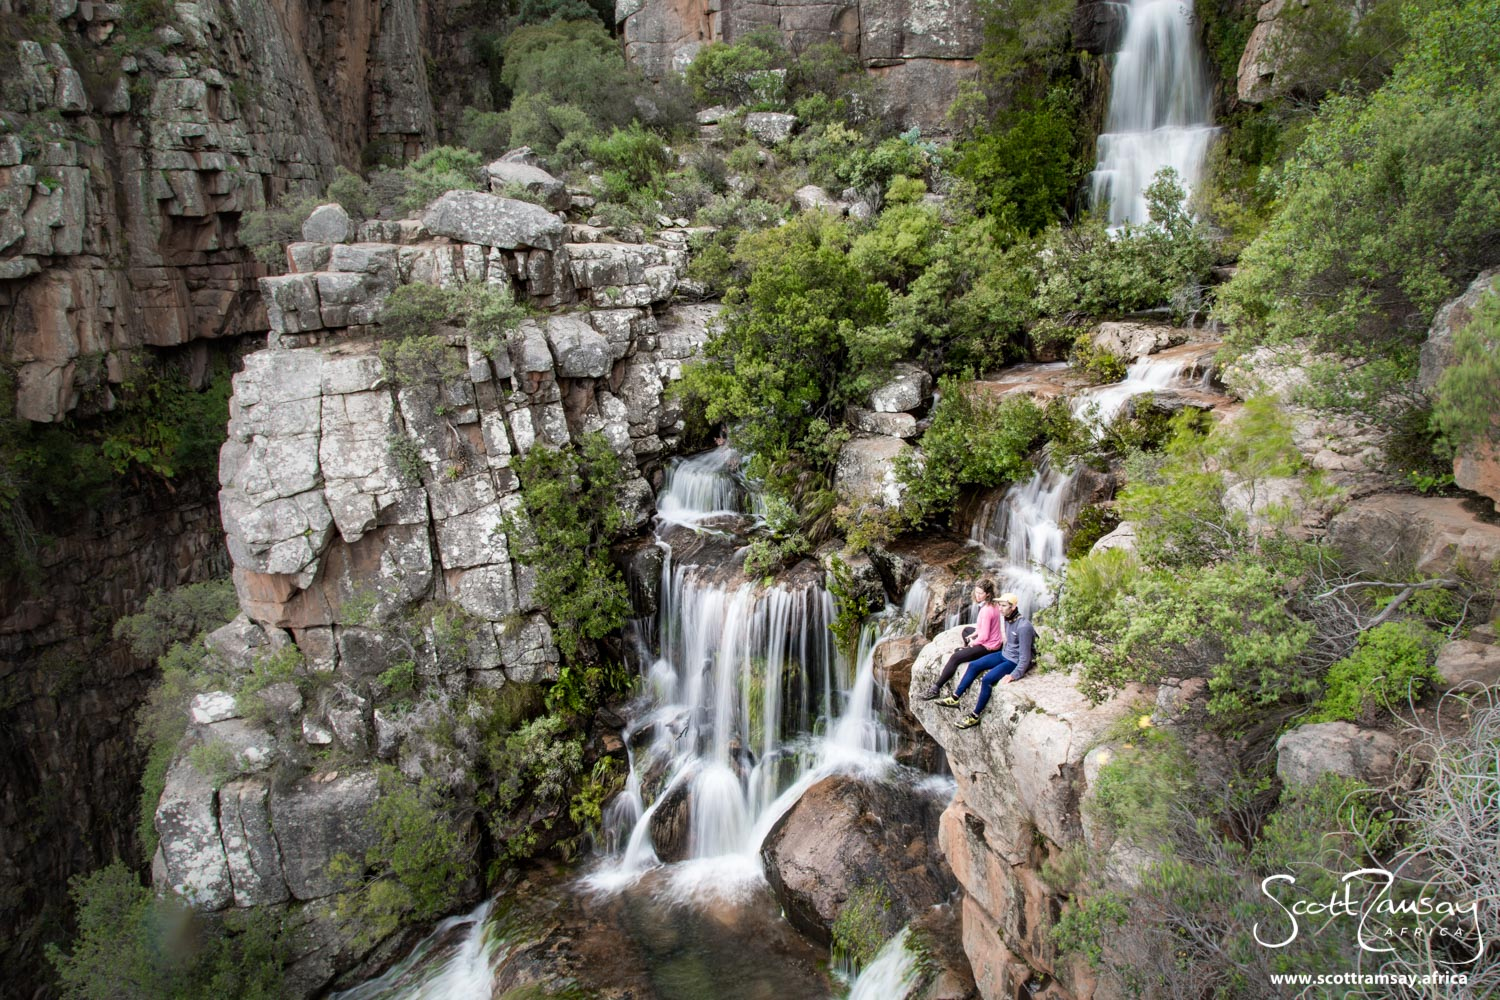 This waterfall and river is about an hour's walk up the mountains from the campsite and chalets at Algeria, the main entrance to the Cederberg wilderness.